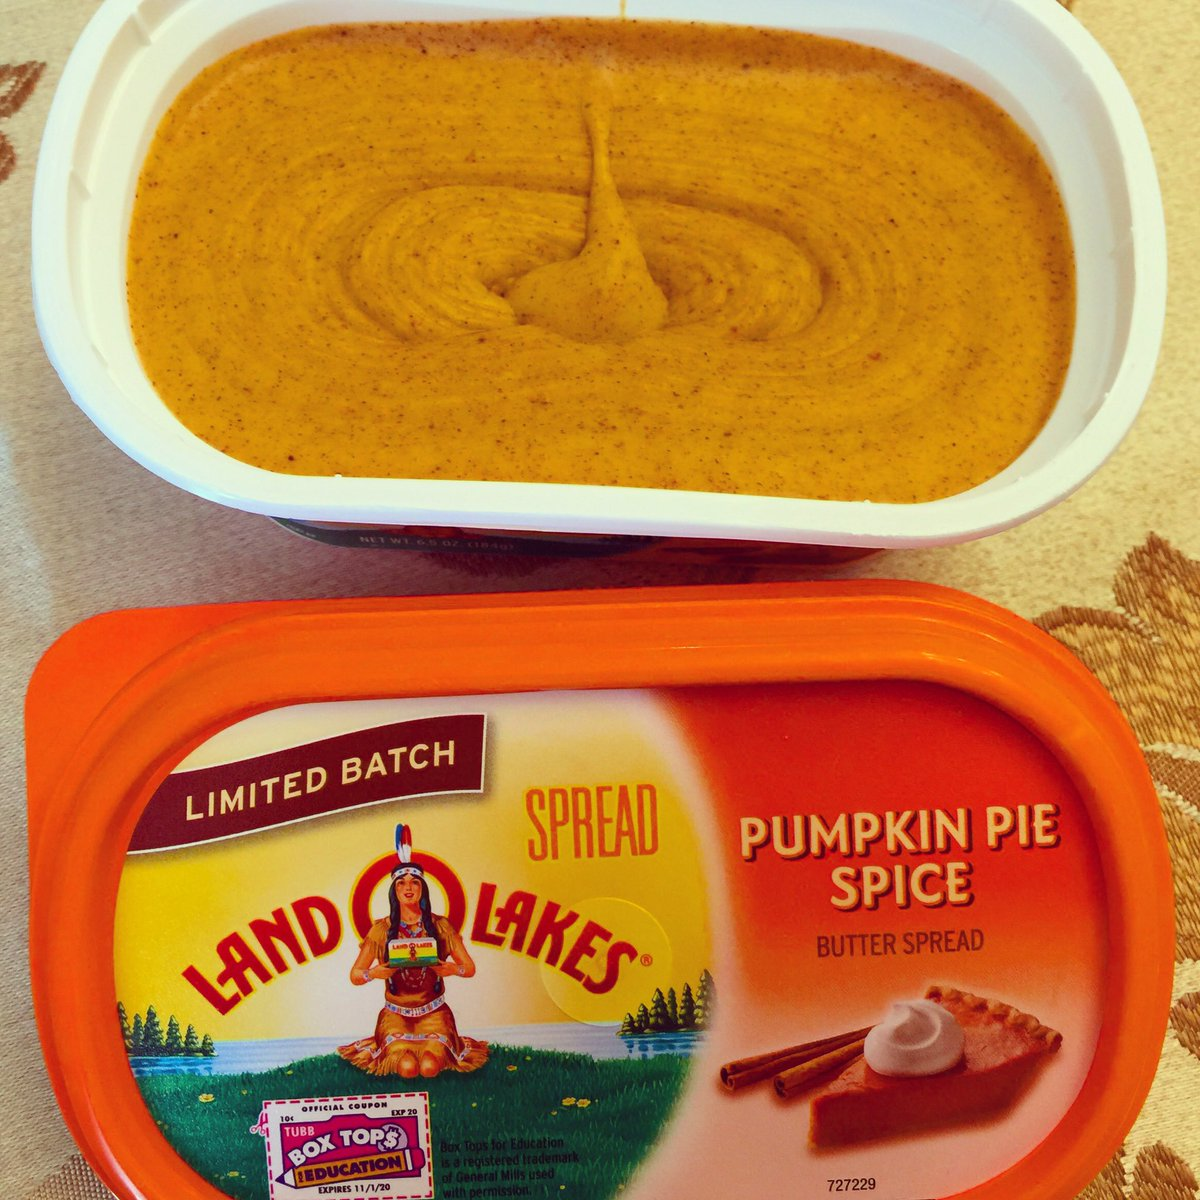 You can now buy pumpkin spice butter at the grocery store